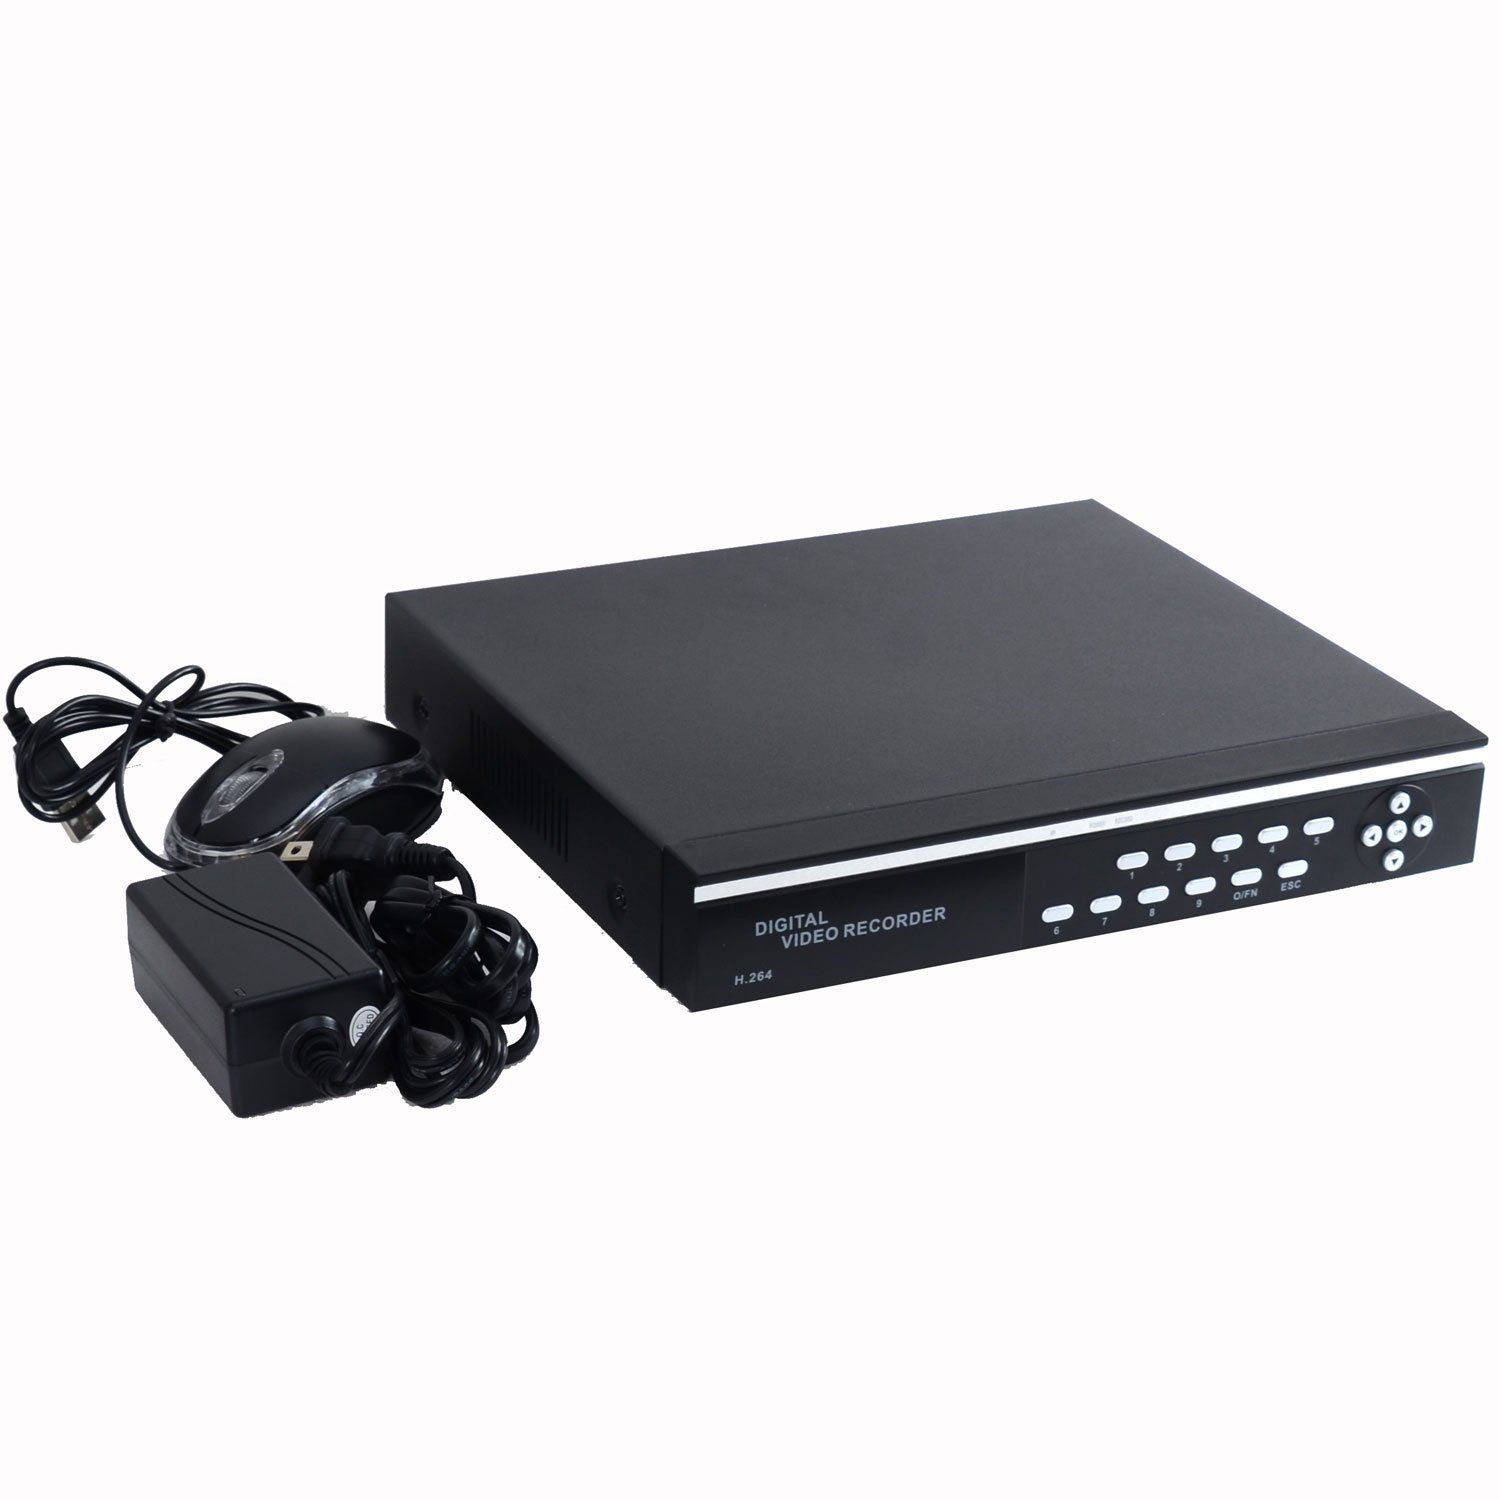 Amazon.com: VideoSecu 8 Channel H.264 Stand Alone DVR Network ...